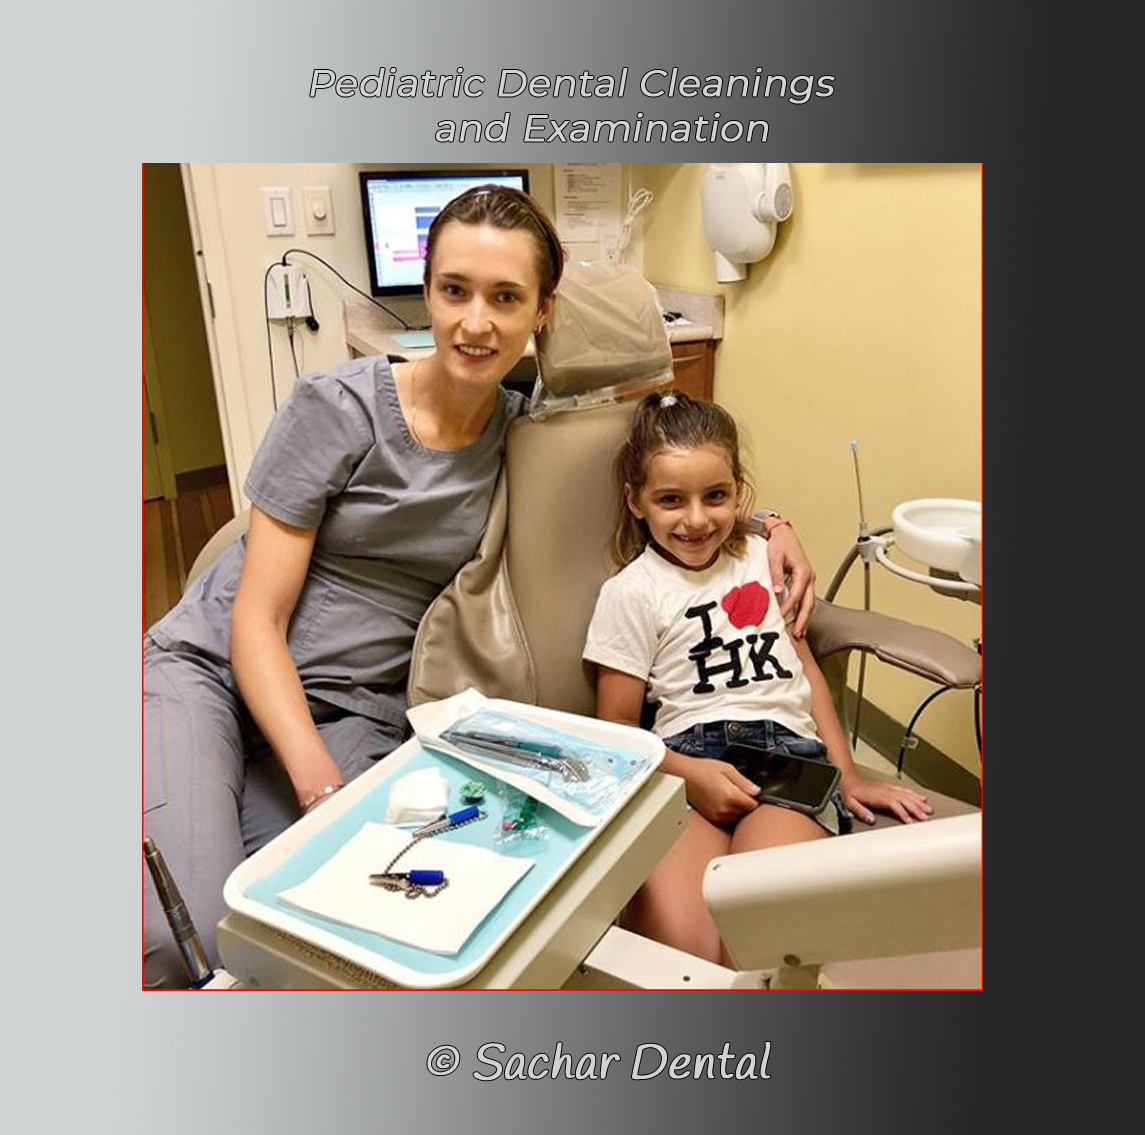 Picture of dental hygienist Anna with little girl, pediatric patient for dental cleaning